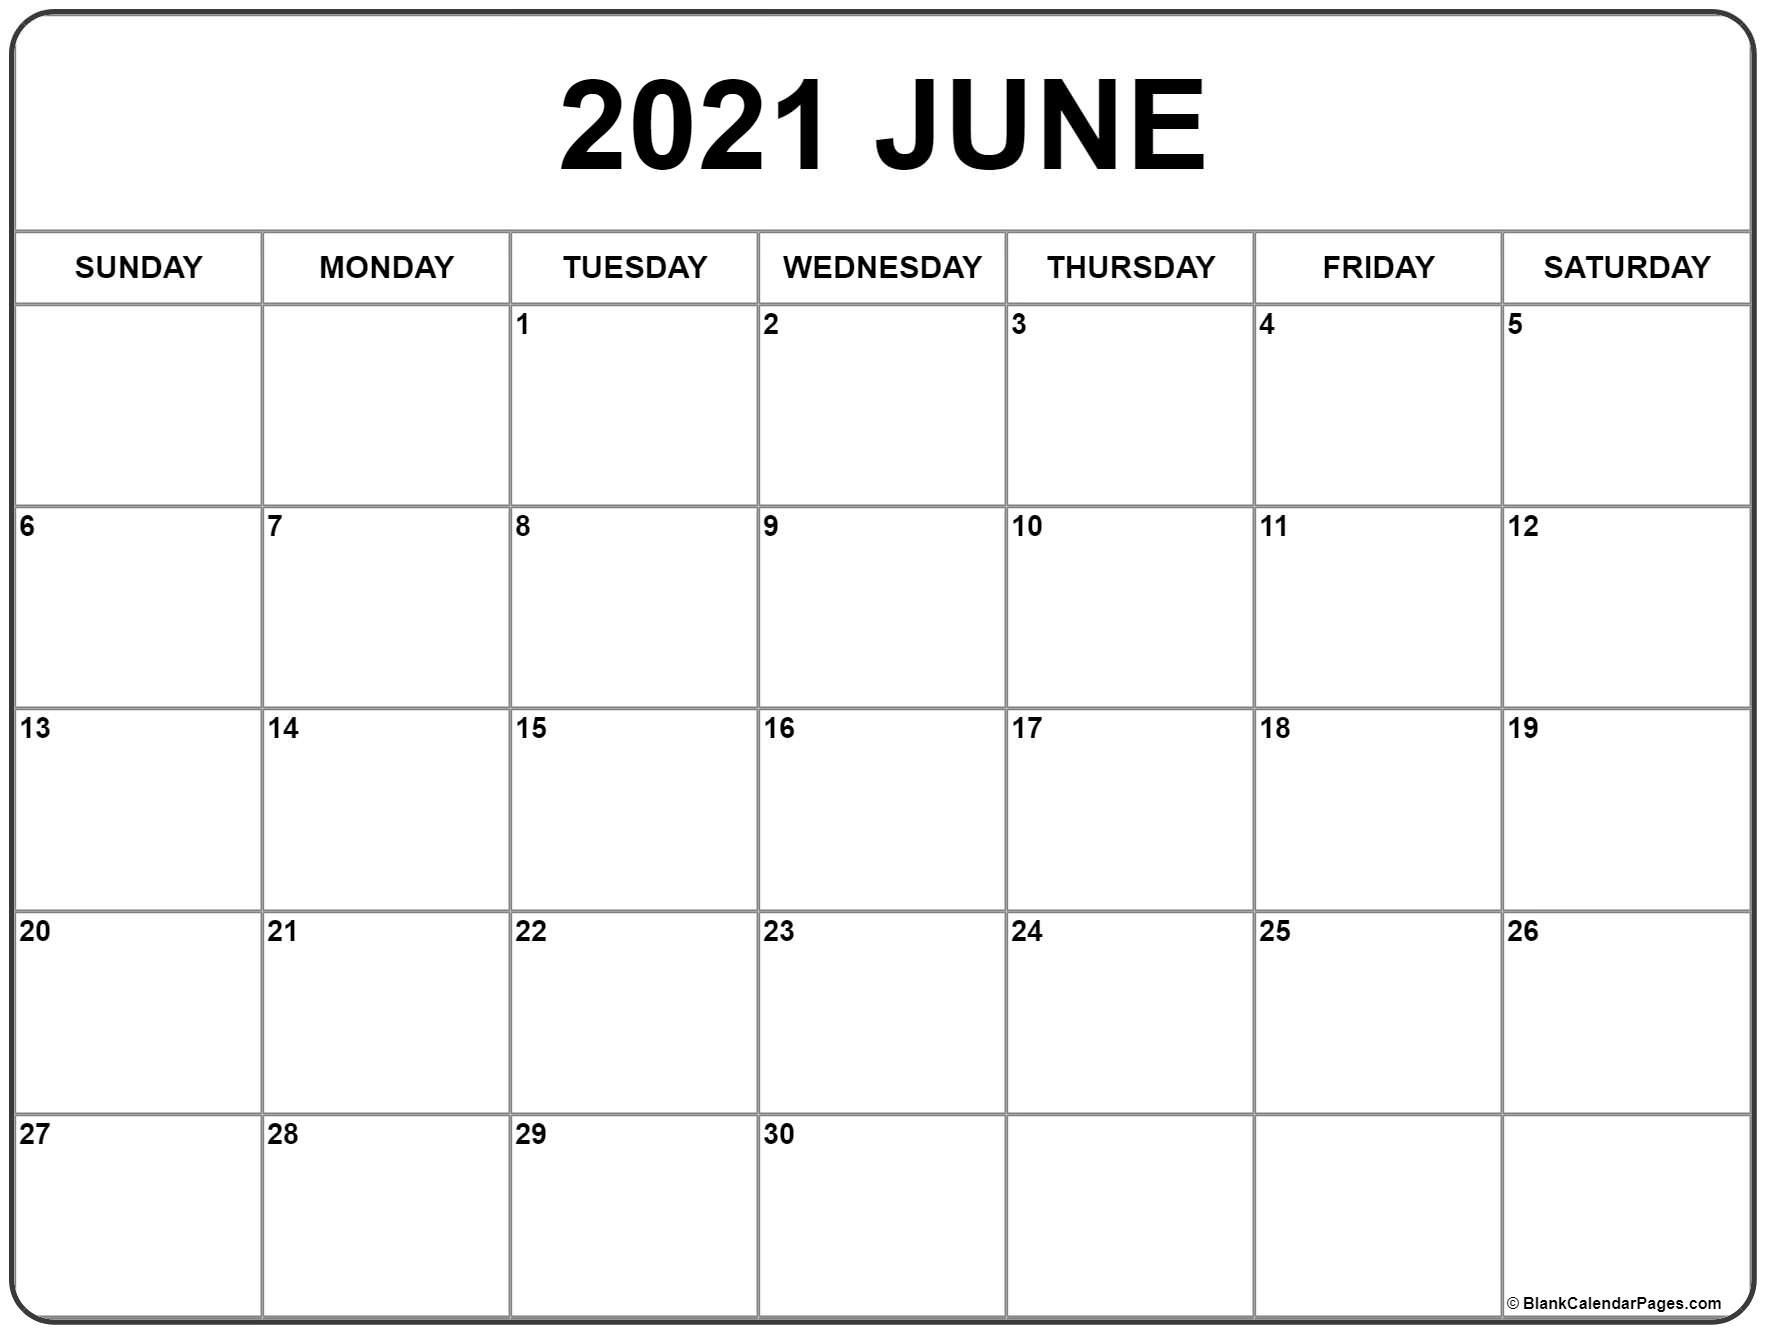 June 2021 Calendar | Free Printable Monthly Calendars  Printable Online Calendar 2021